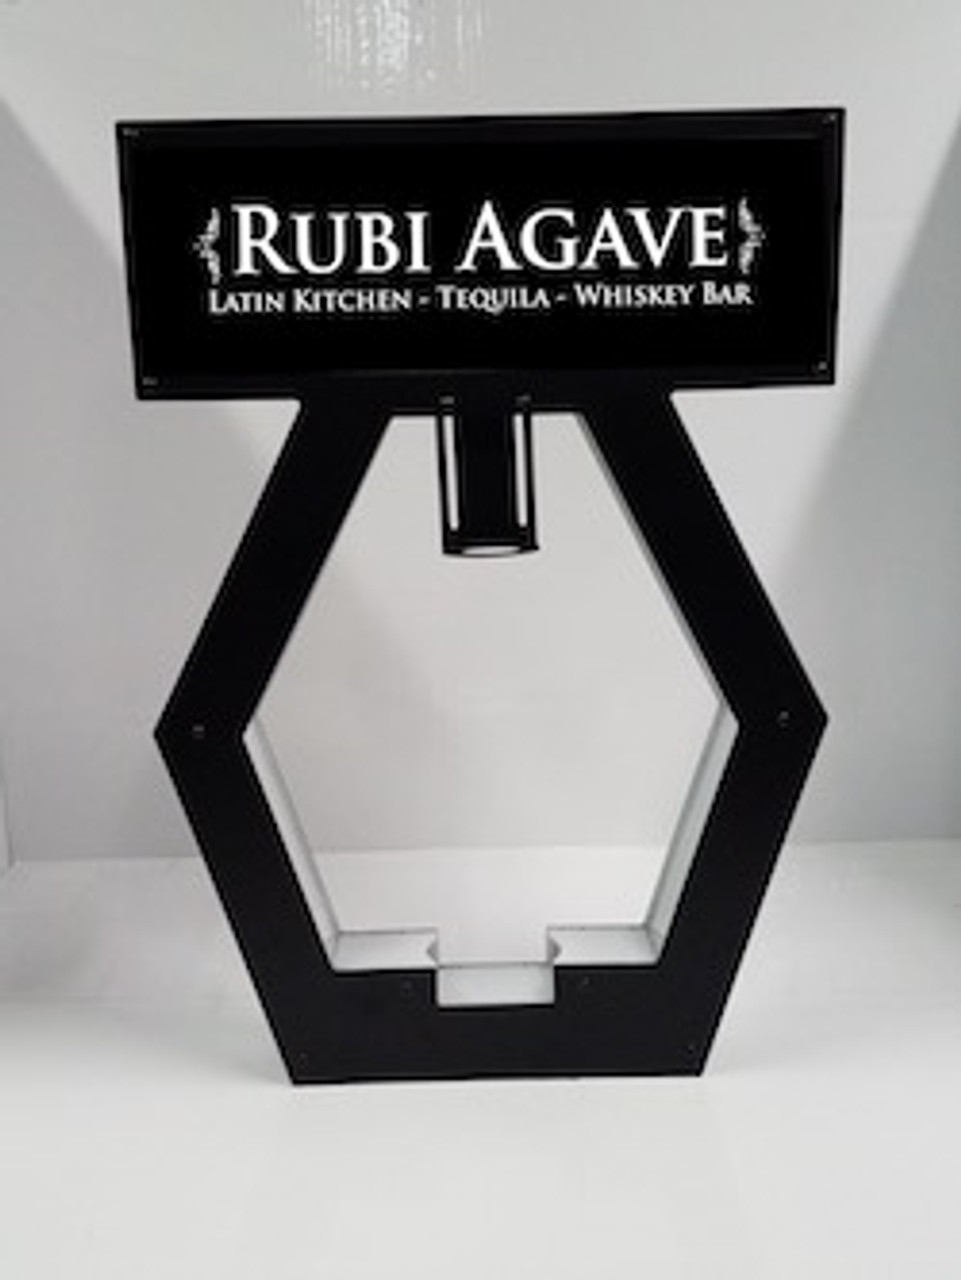 changeable_Nightclub_VIP_Lightbox_Champagne_Liquor_Tray_interchangeable_Bottle_service_carrier_holder_tray_Presenter_caddie_caddy_Banner_Top_LED_Sign